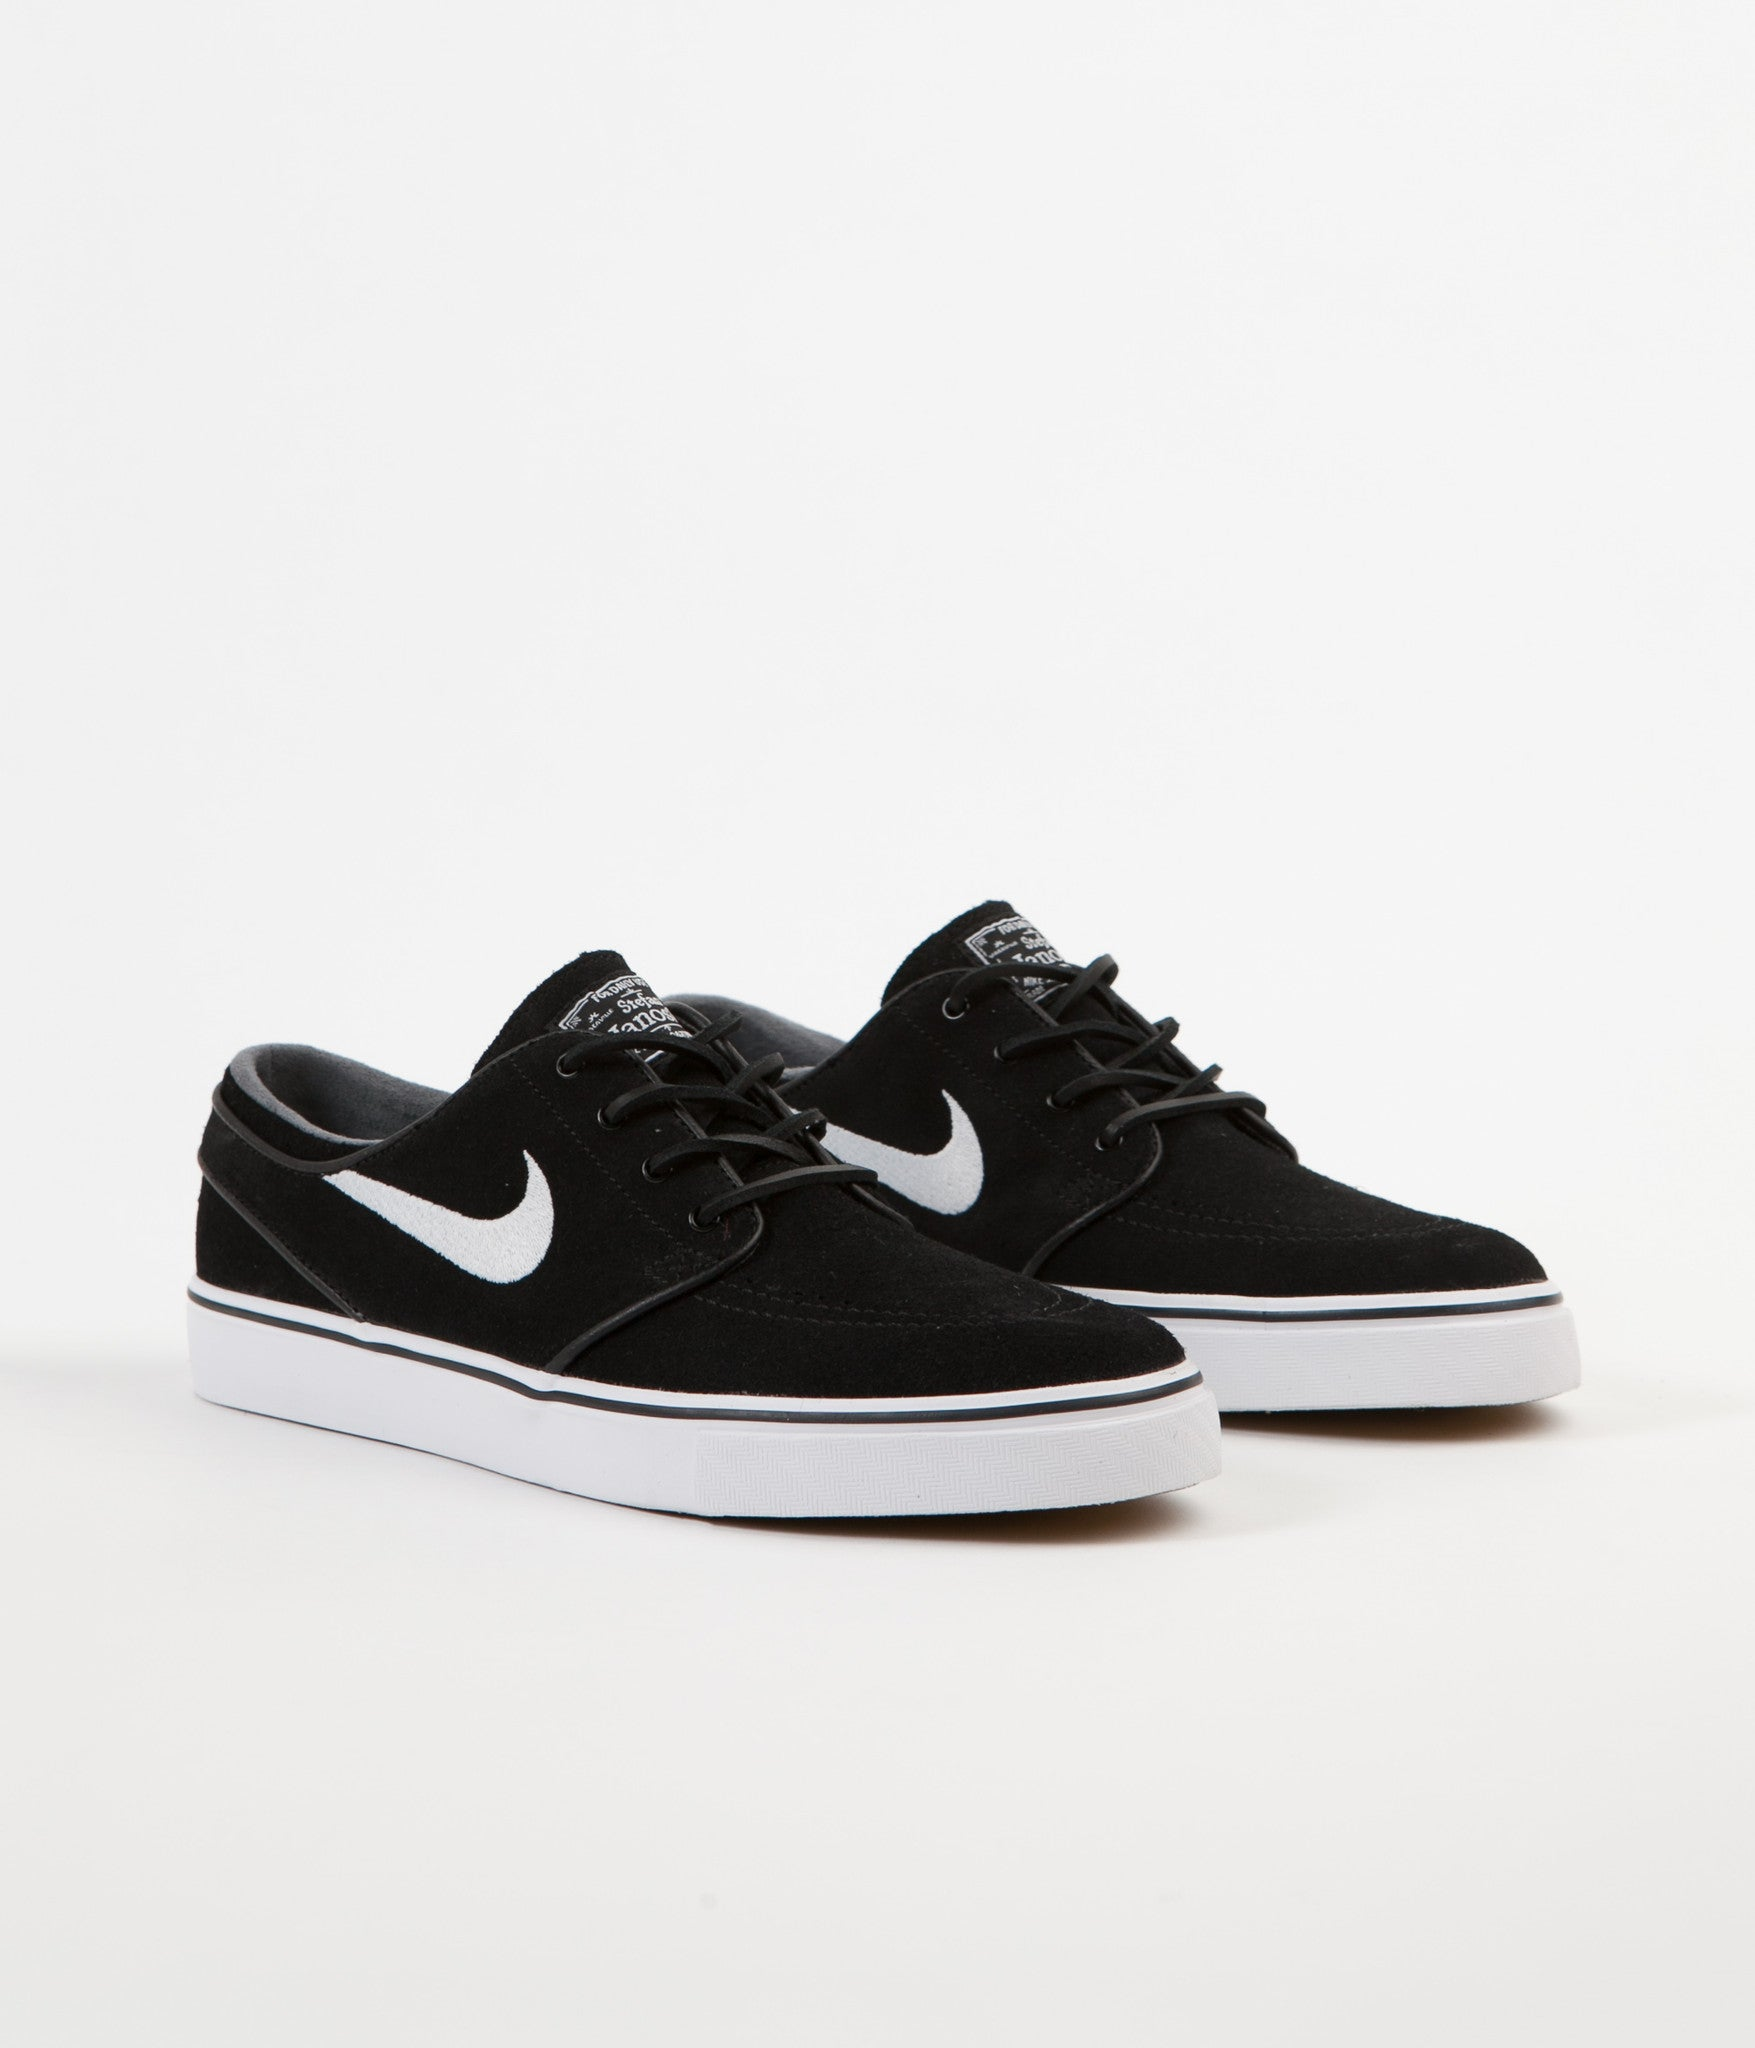 ... Nike SB Stefan Janoski OG Shoes - Black / White - Gum Light Brown ...